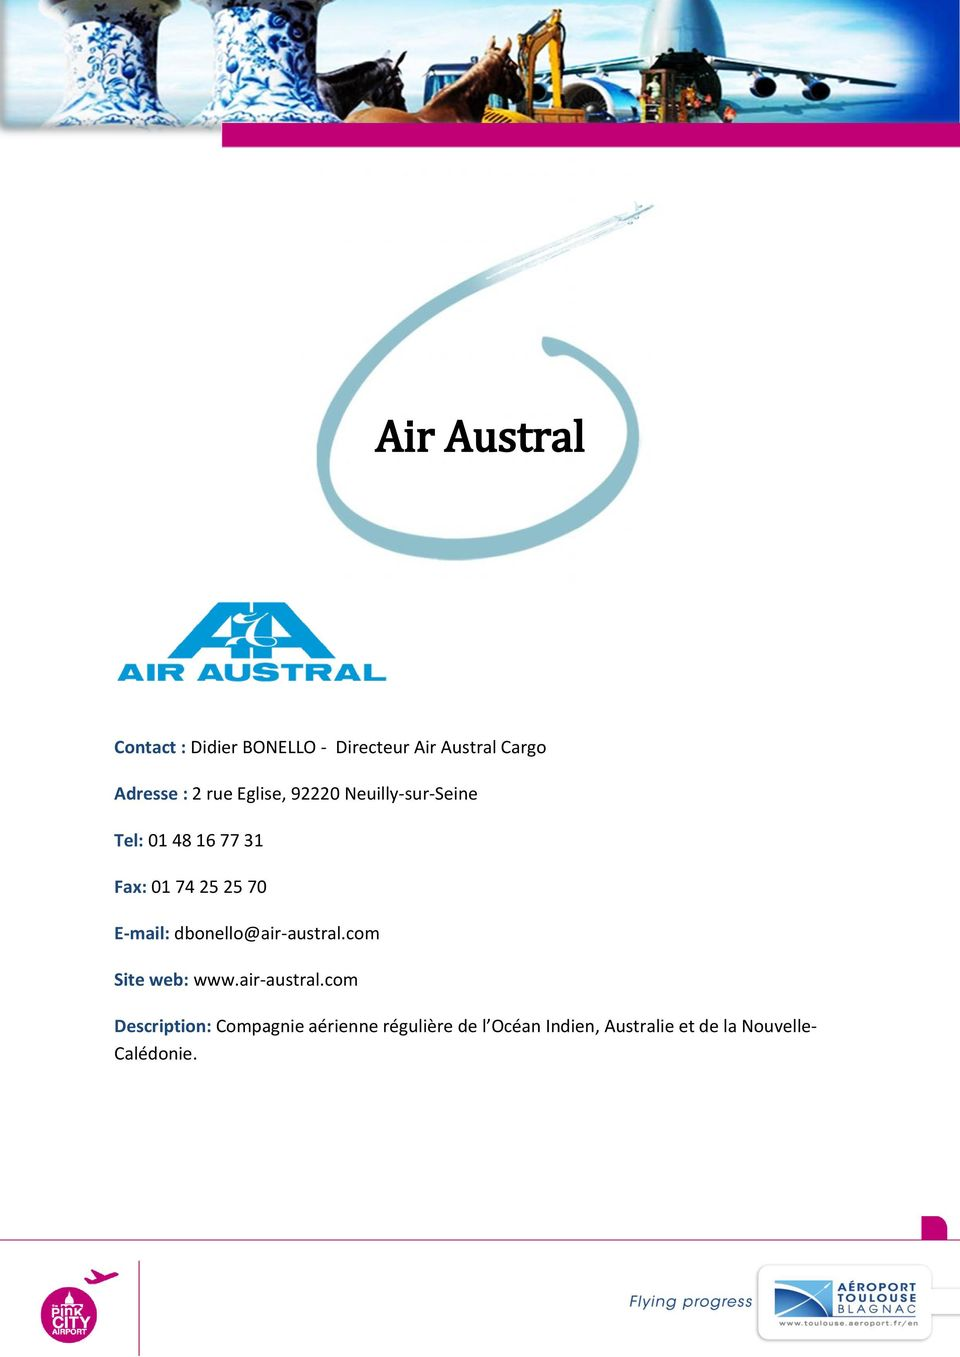 E-mail: dbonello@air-austral.